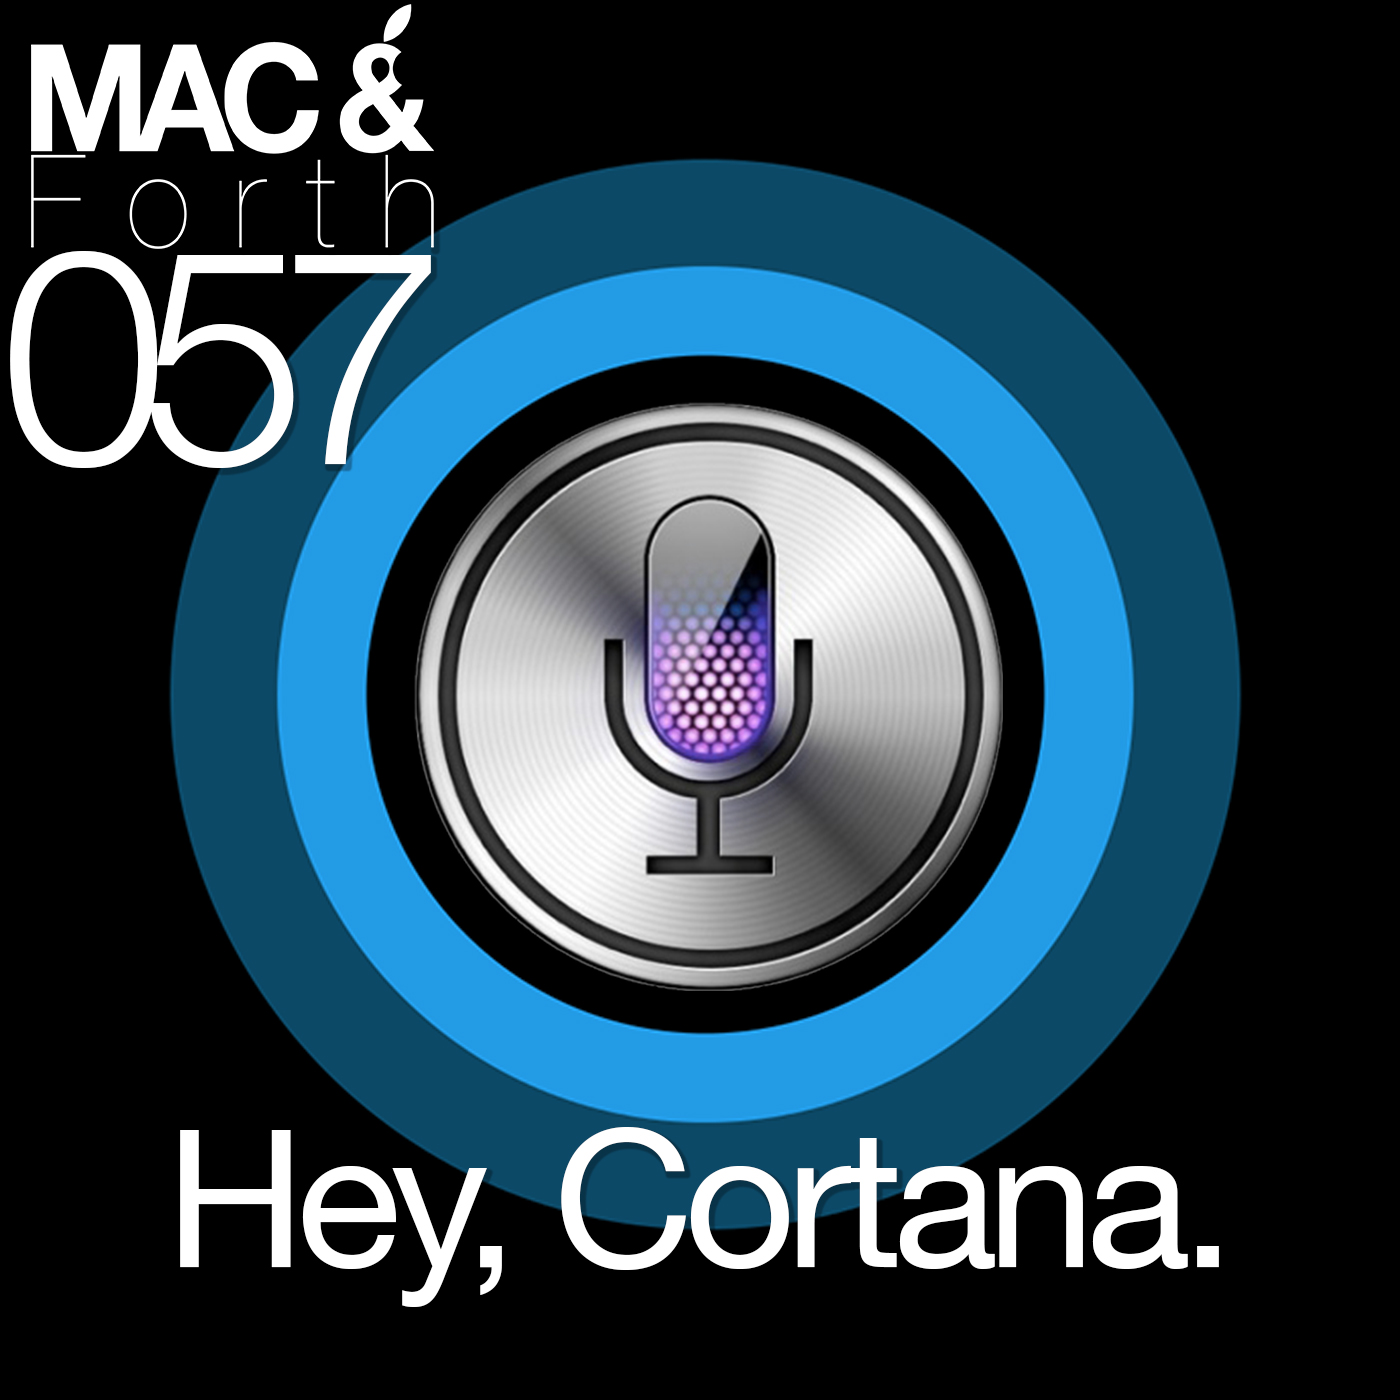 The Mac & Forth Show 057 - Hey, Cortana